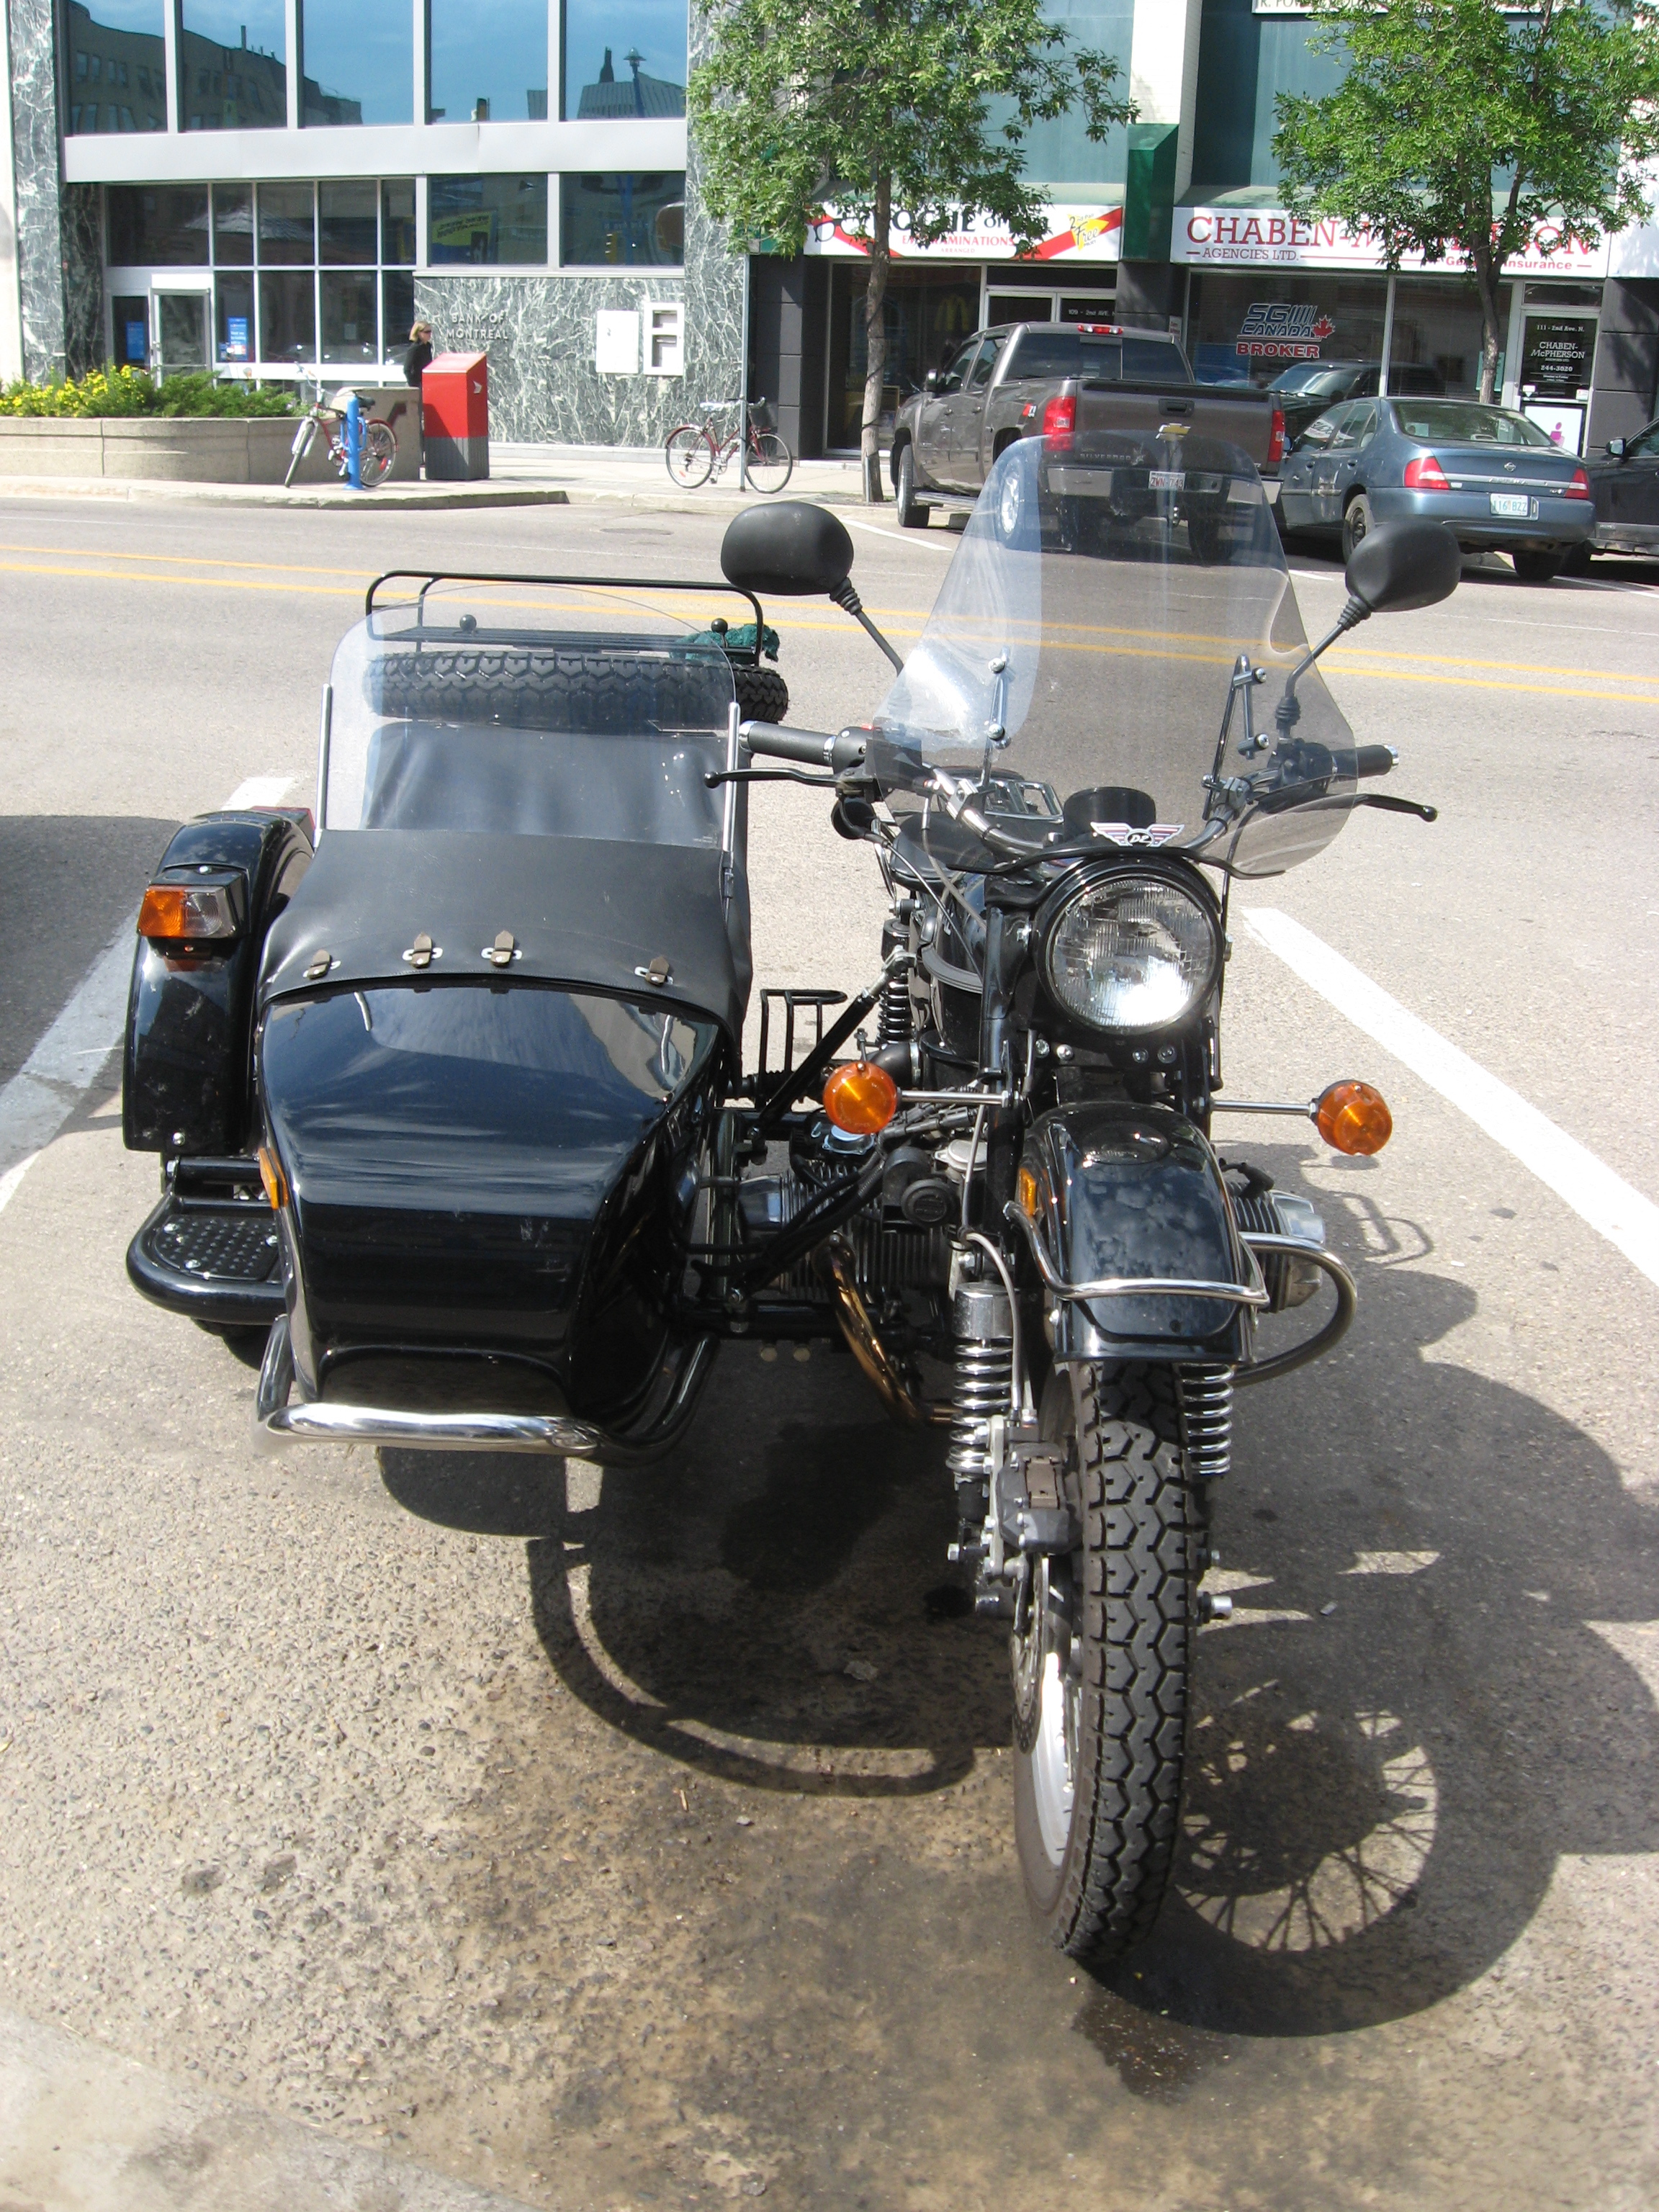 Ural Solo images #127638